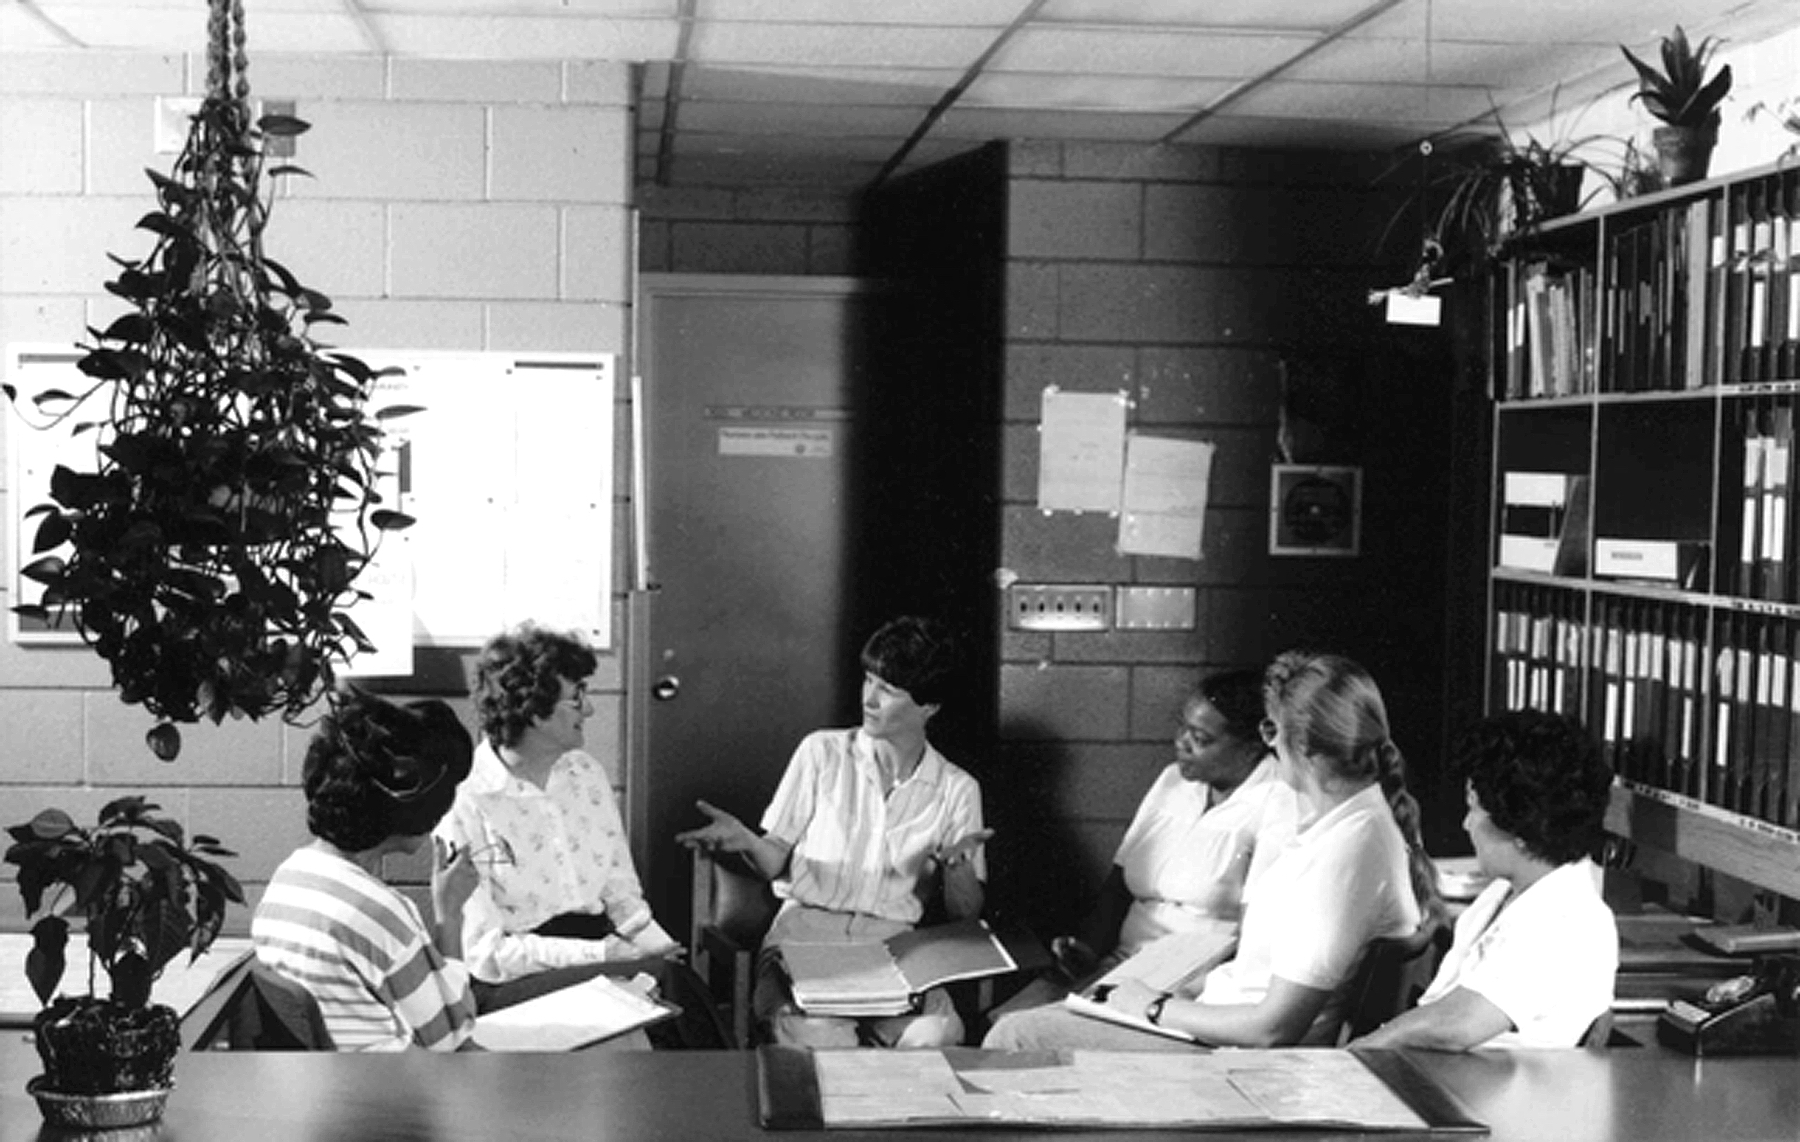 group of women health professionals sitting around a table in an office or library